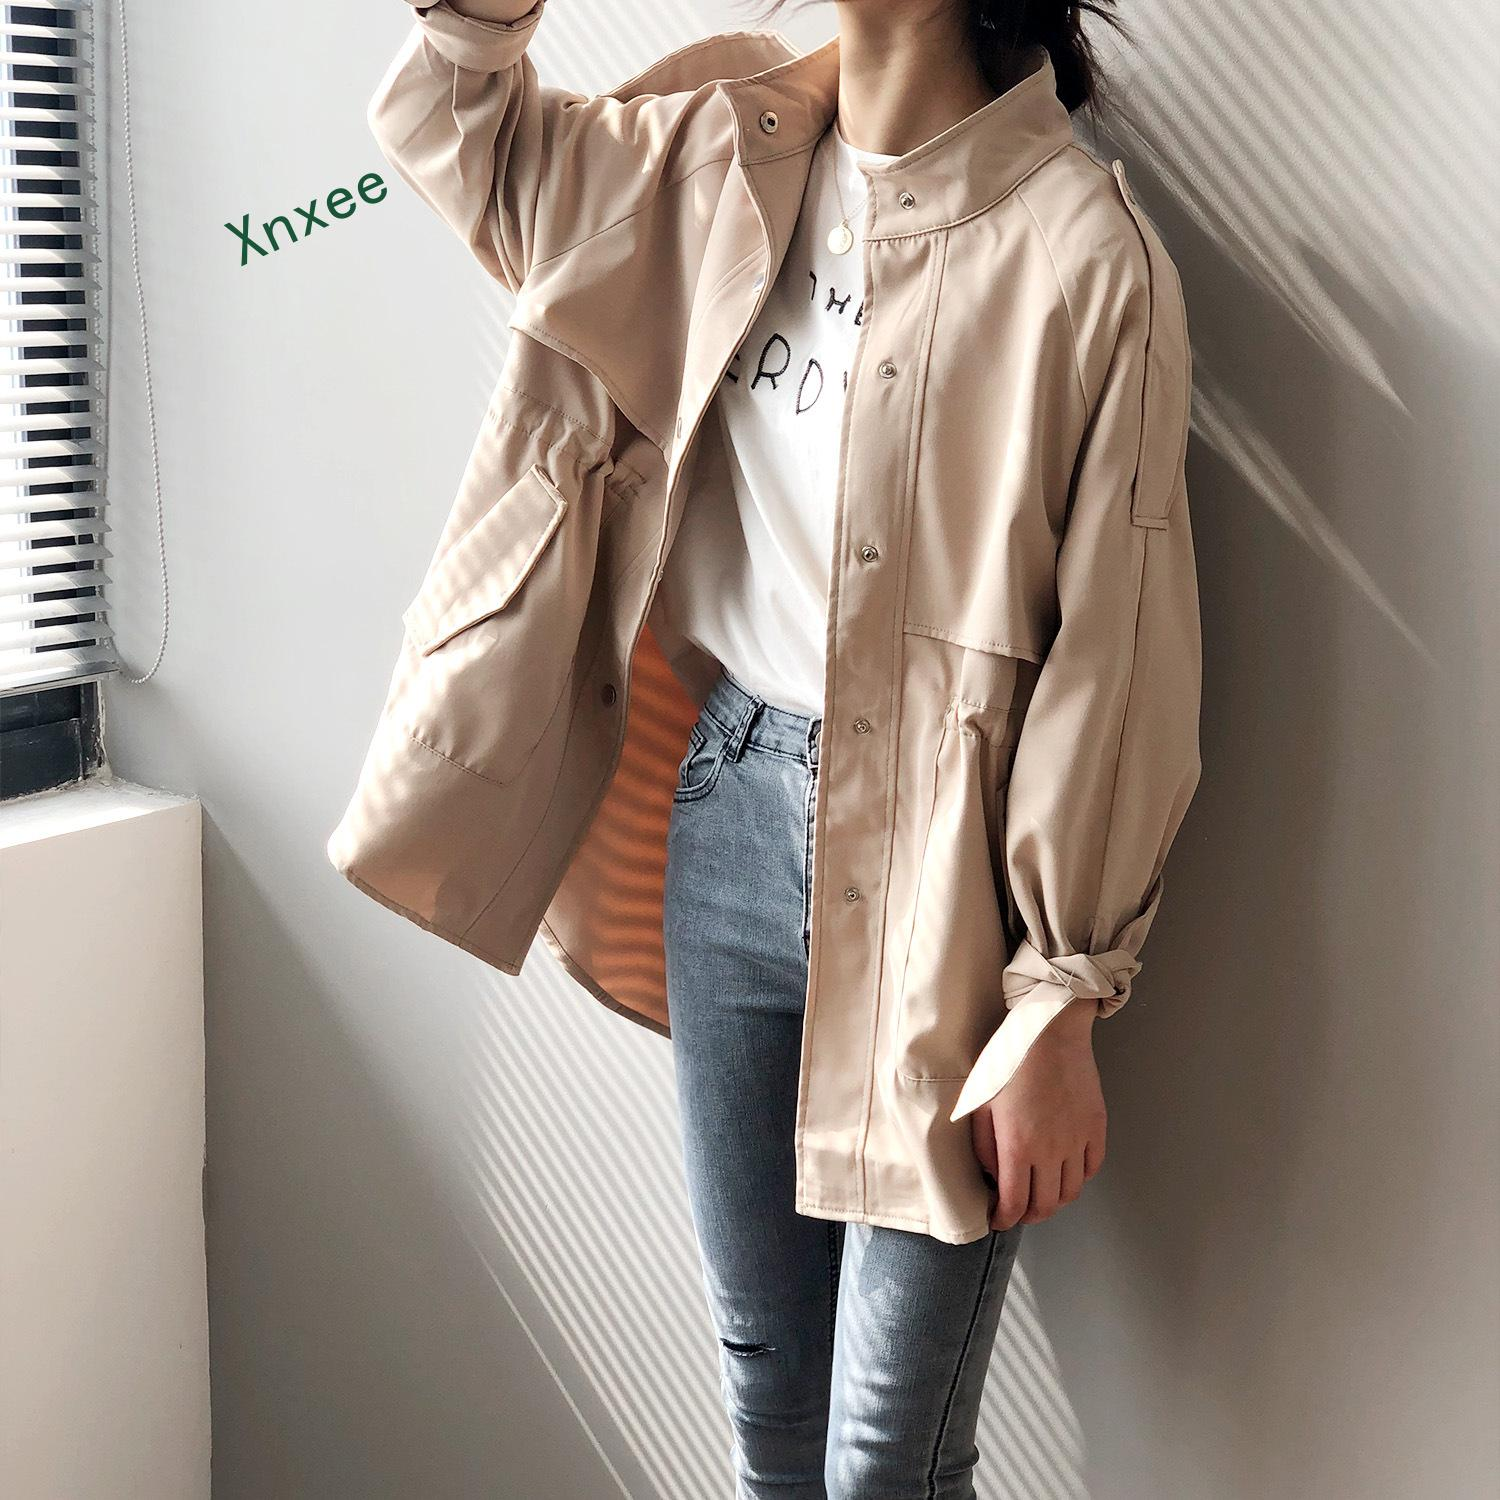 Xnxee women coat Windshield Short Style Spring New Korean Top Student Loose Coat women clothes jacket duster coat